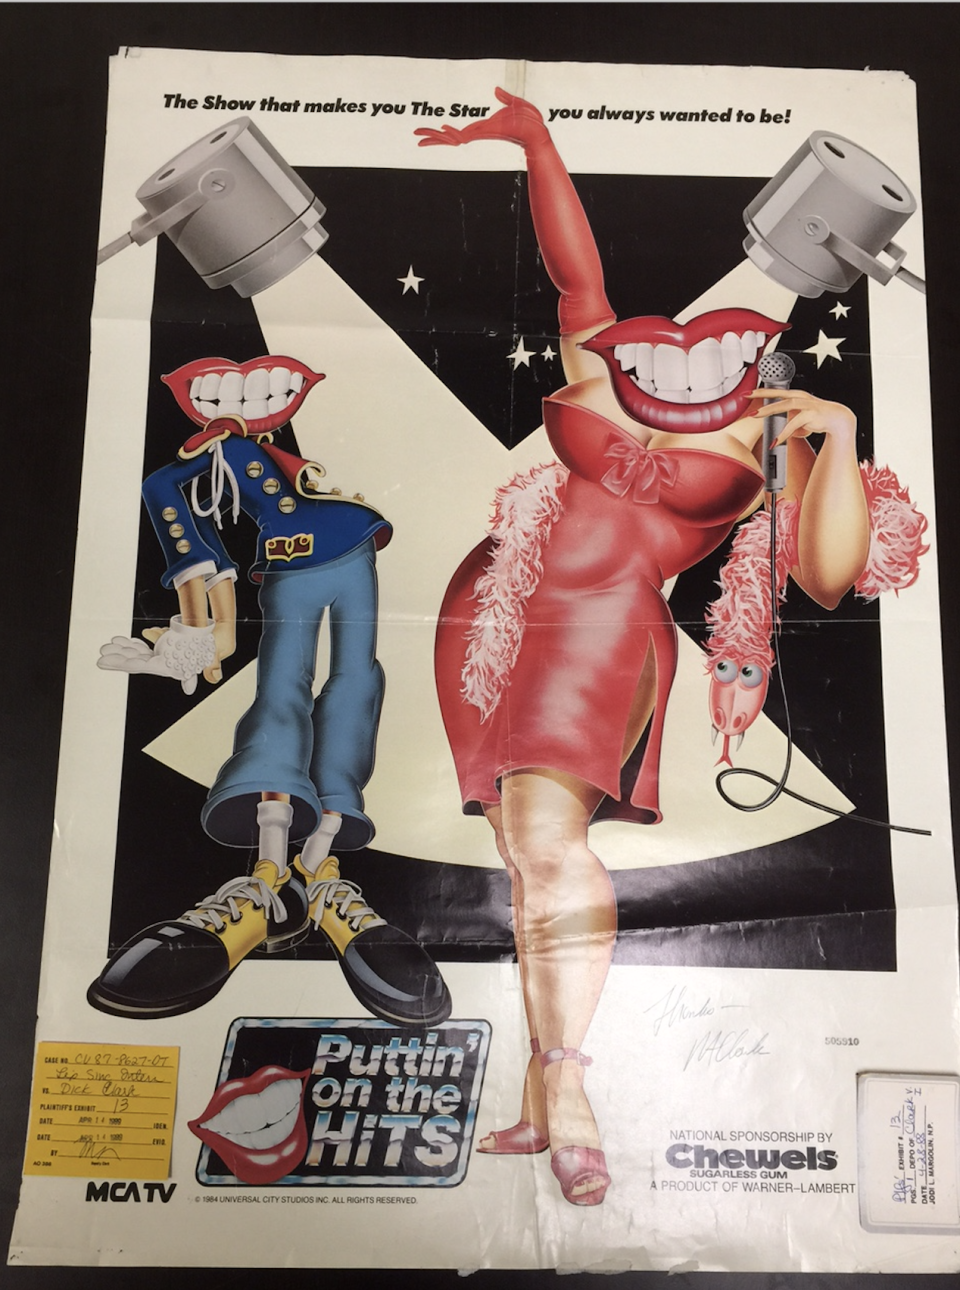 A 'Puttin' on the Hits' poster, signed by R.A. Clark, given to Wm. Randy Wood. (Photo: Wm. Randy Wood)